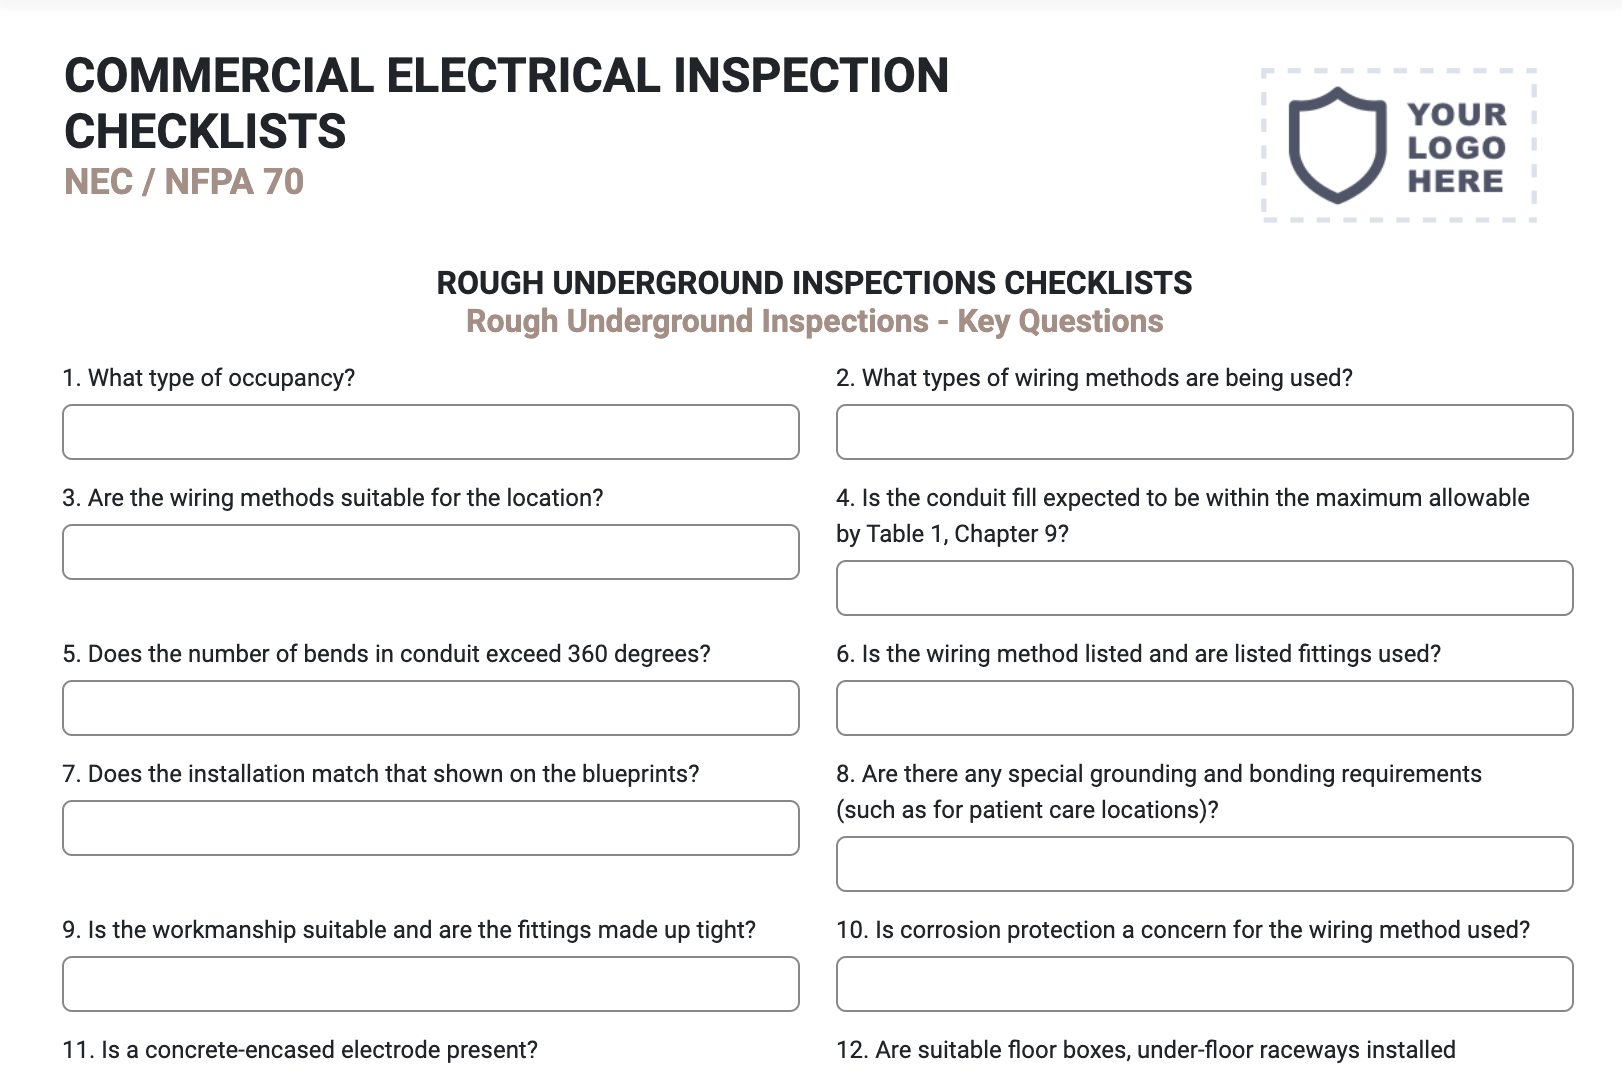 nfpa 70 inspection checklist form